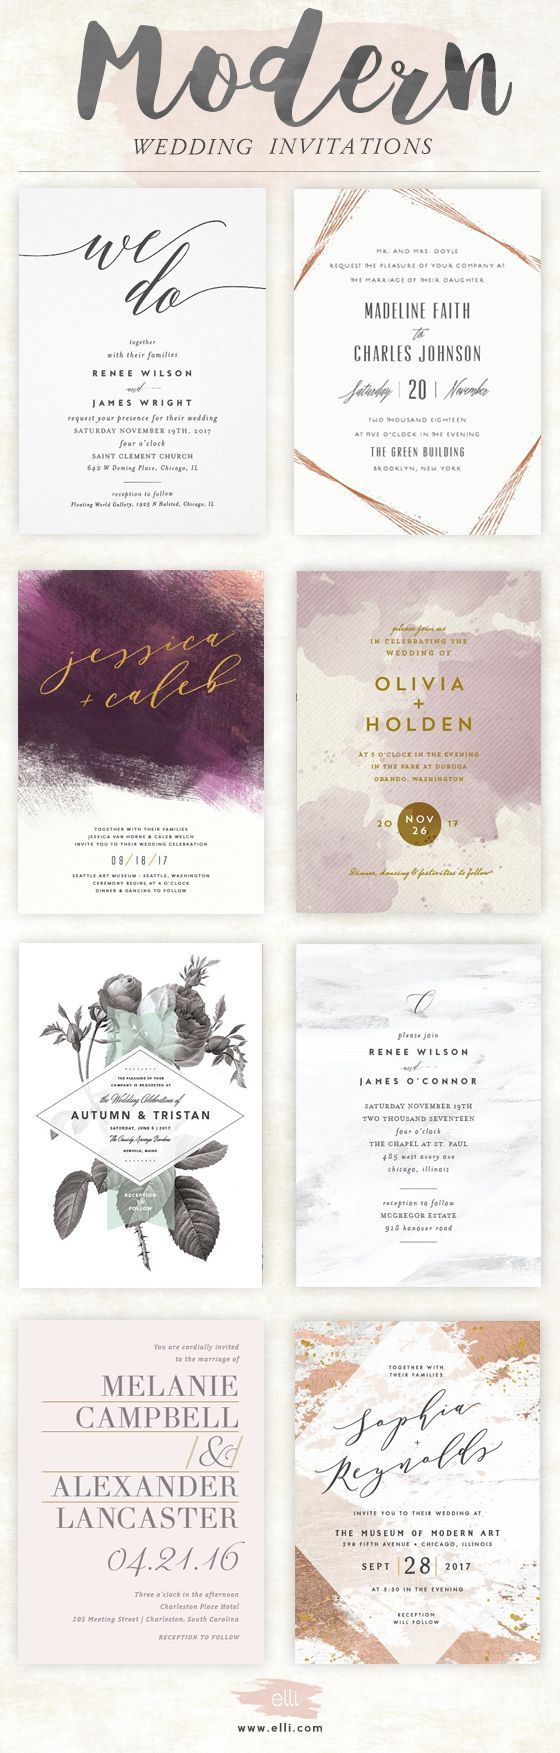 Unique Modern Wedding Invitations in a variety